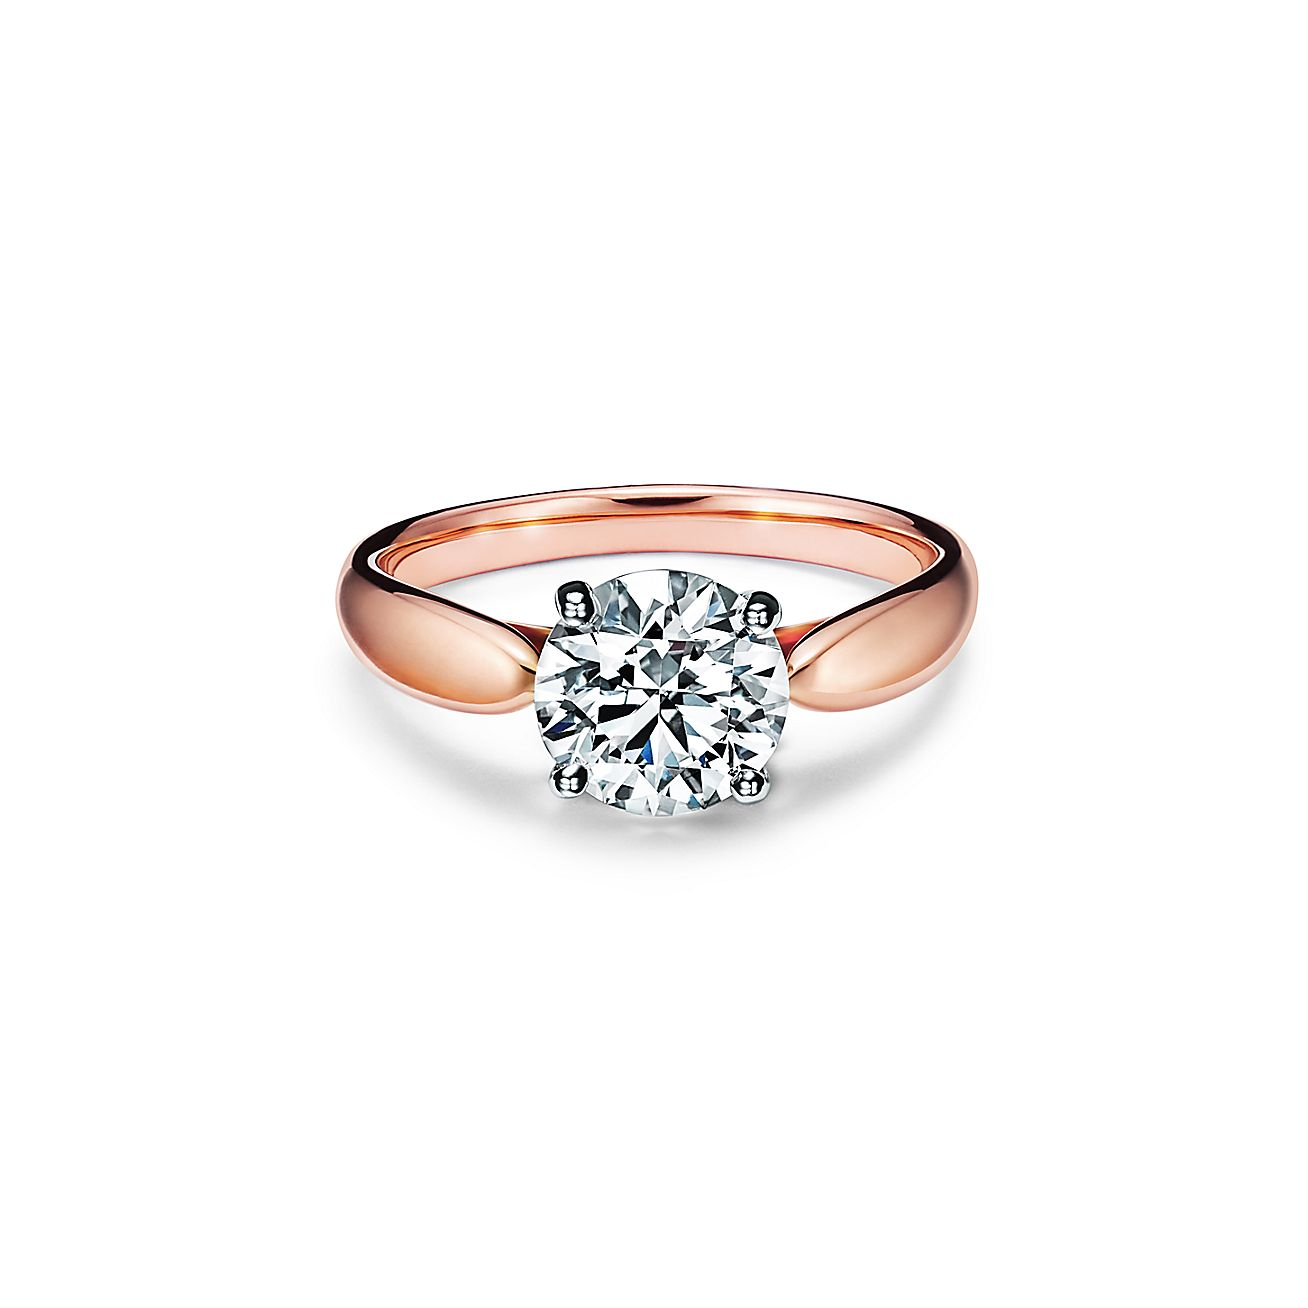 Tiffany Harmony Engagement Ring In 18k Rose Gold A Study In Balance And Grace Tiffany Co